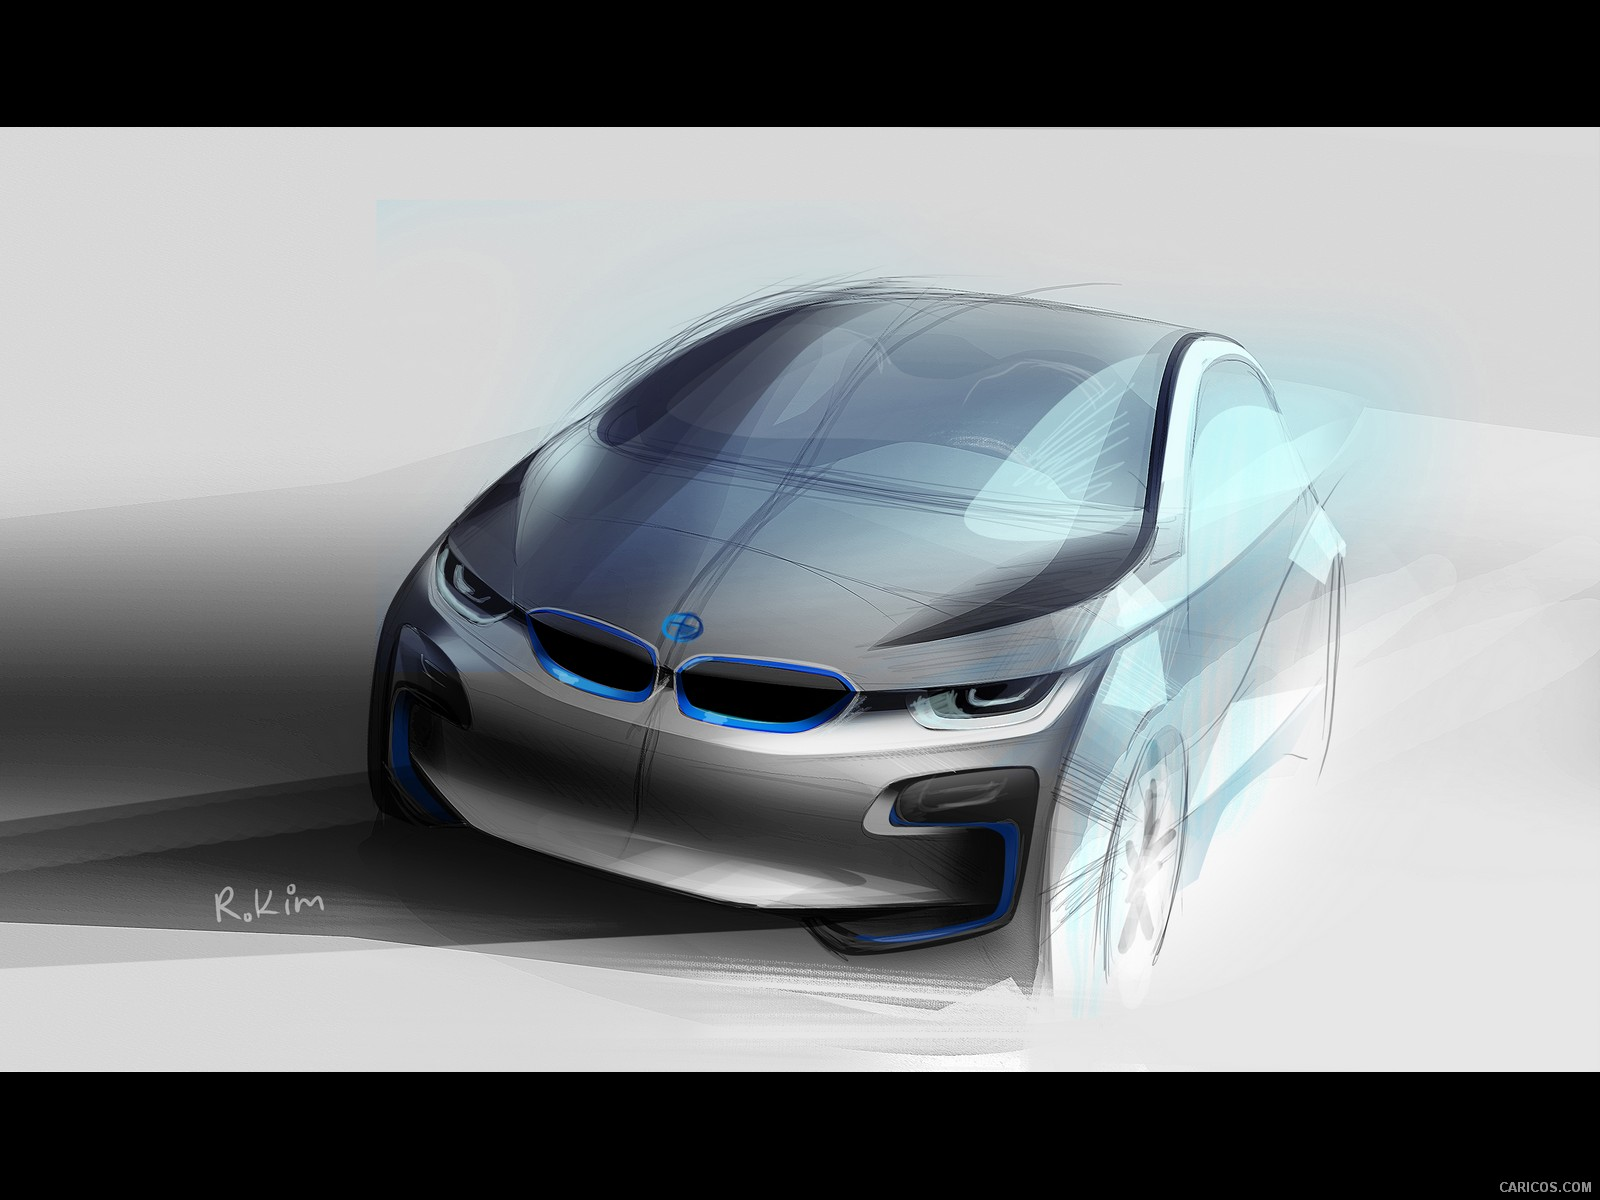 1600x1200 - BMW i3 Concept Wallpapers 26